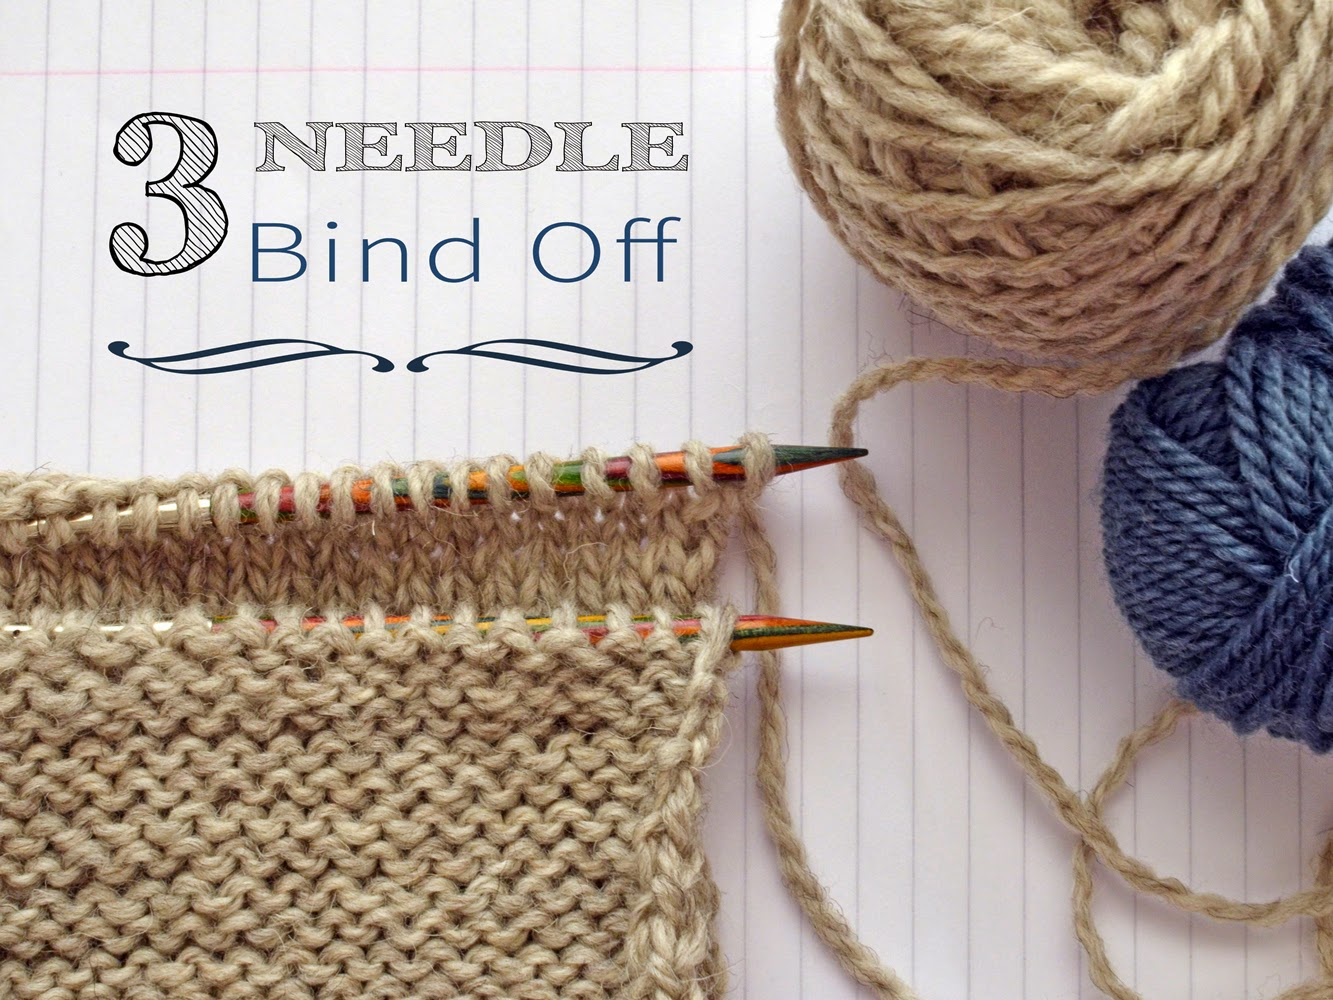 3 needle bind off tutorial